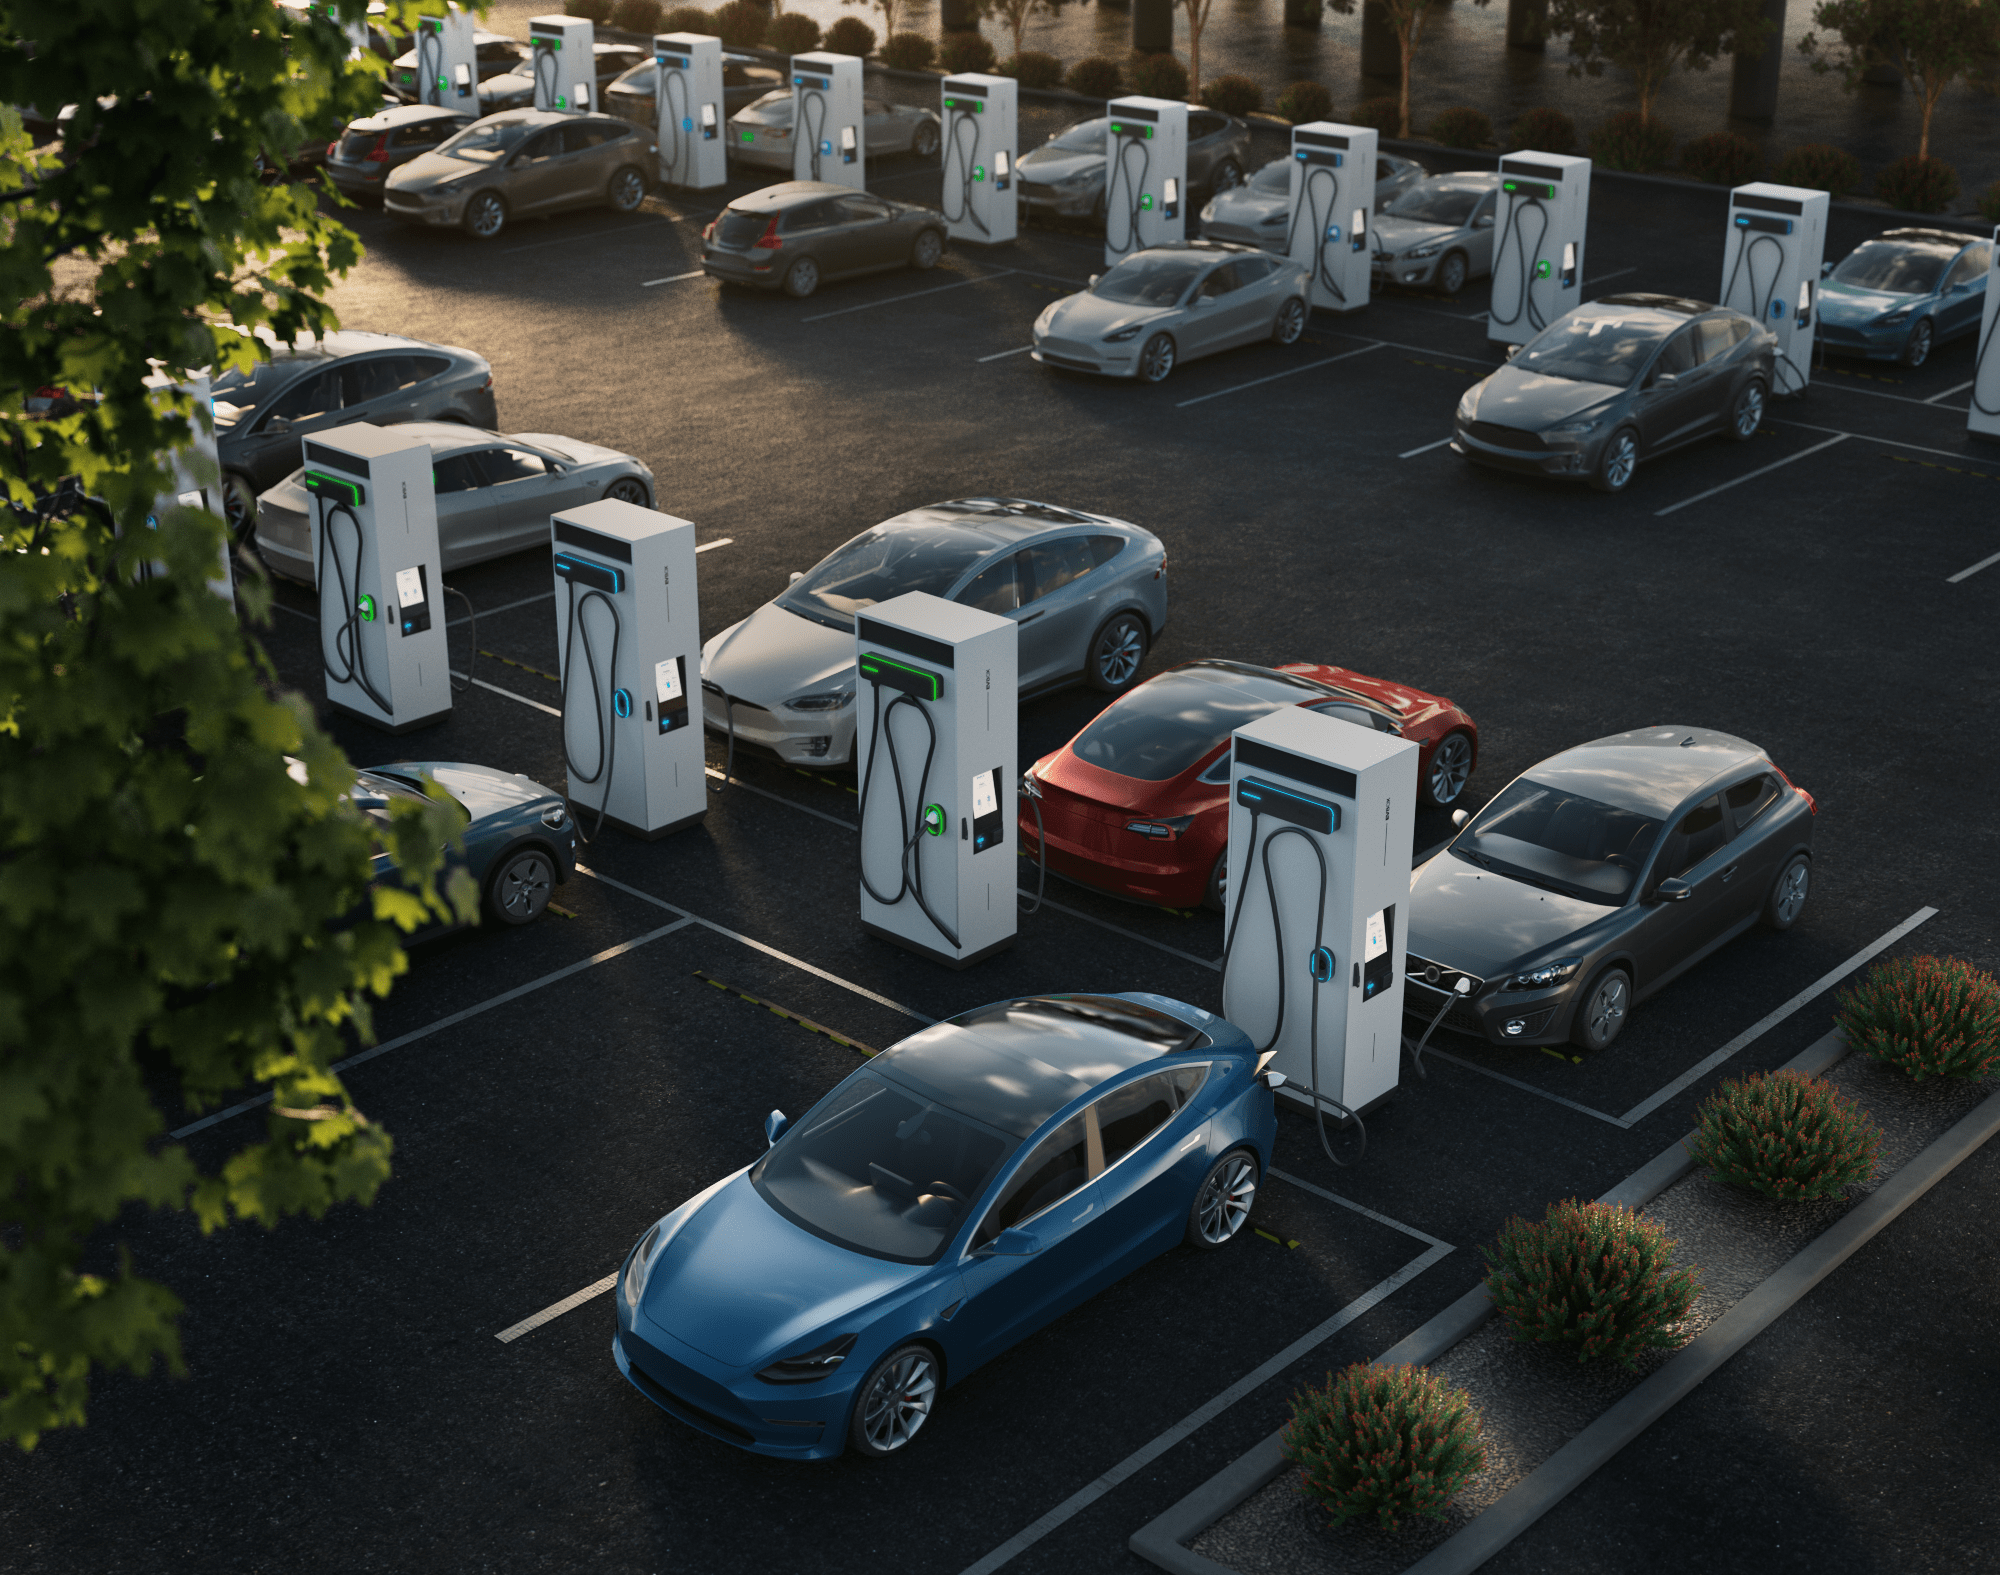 A parking lot filled with many electric vehicles charging from DC fast charging stations.